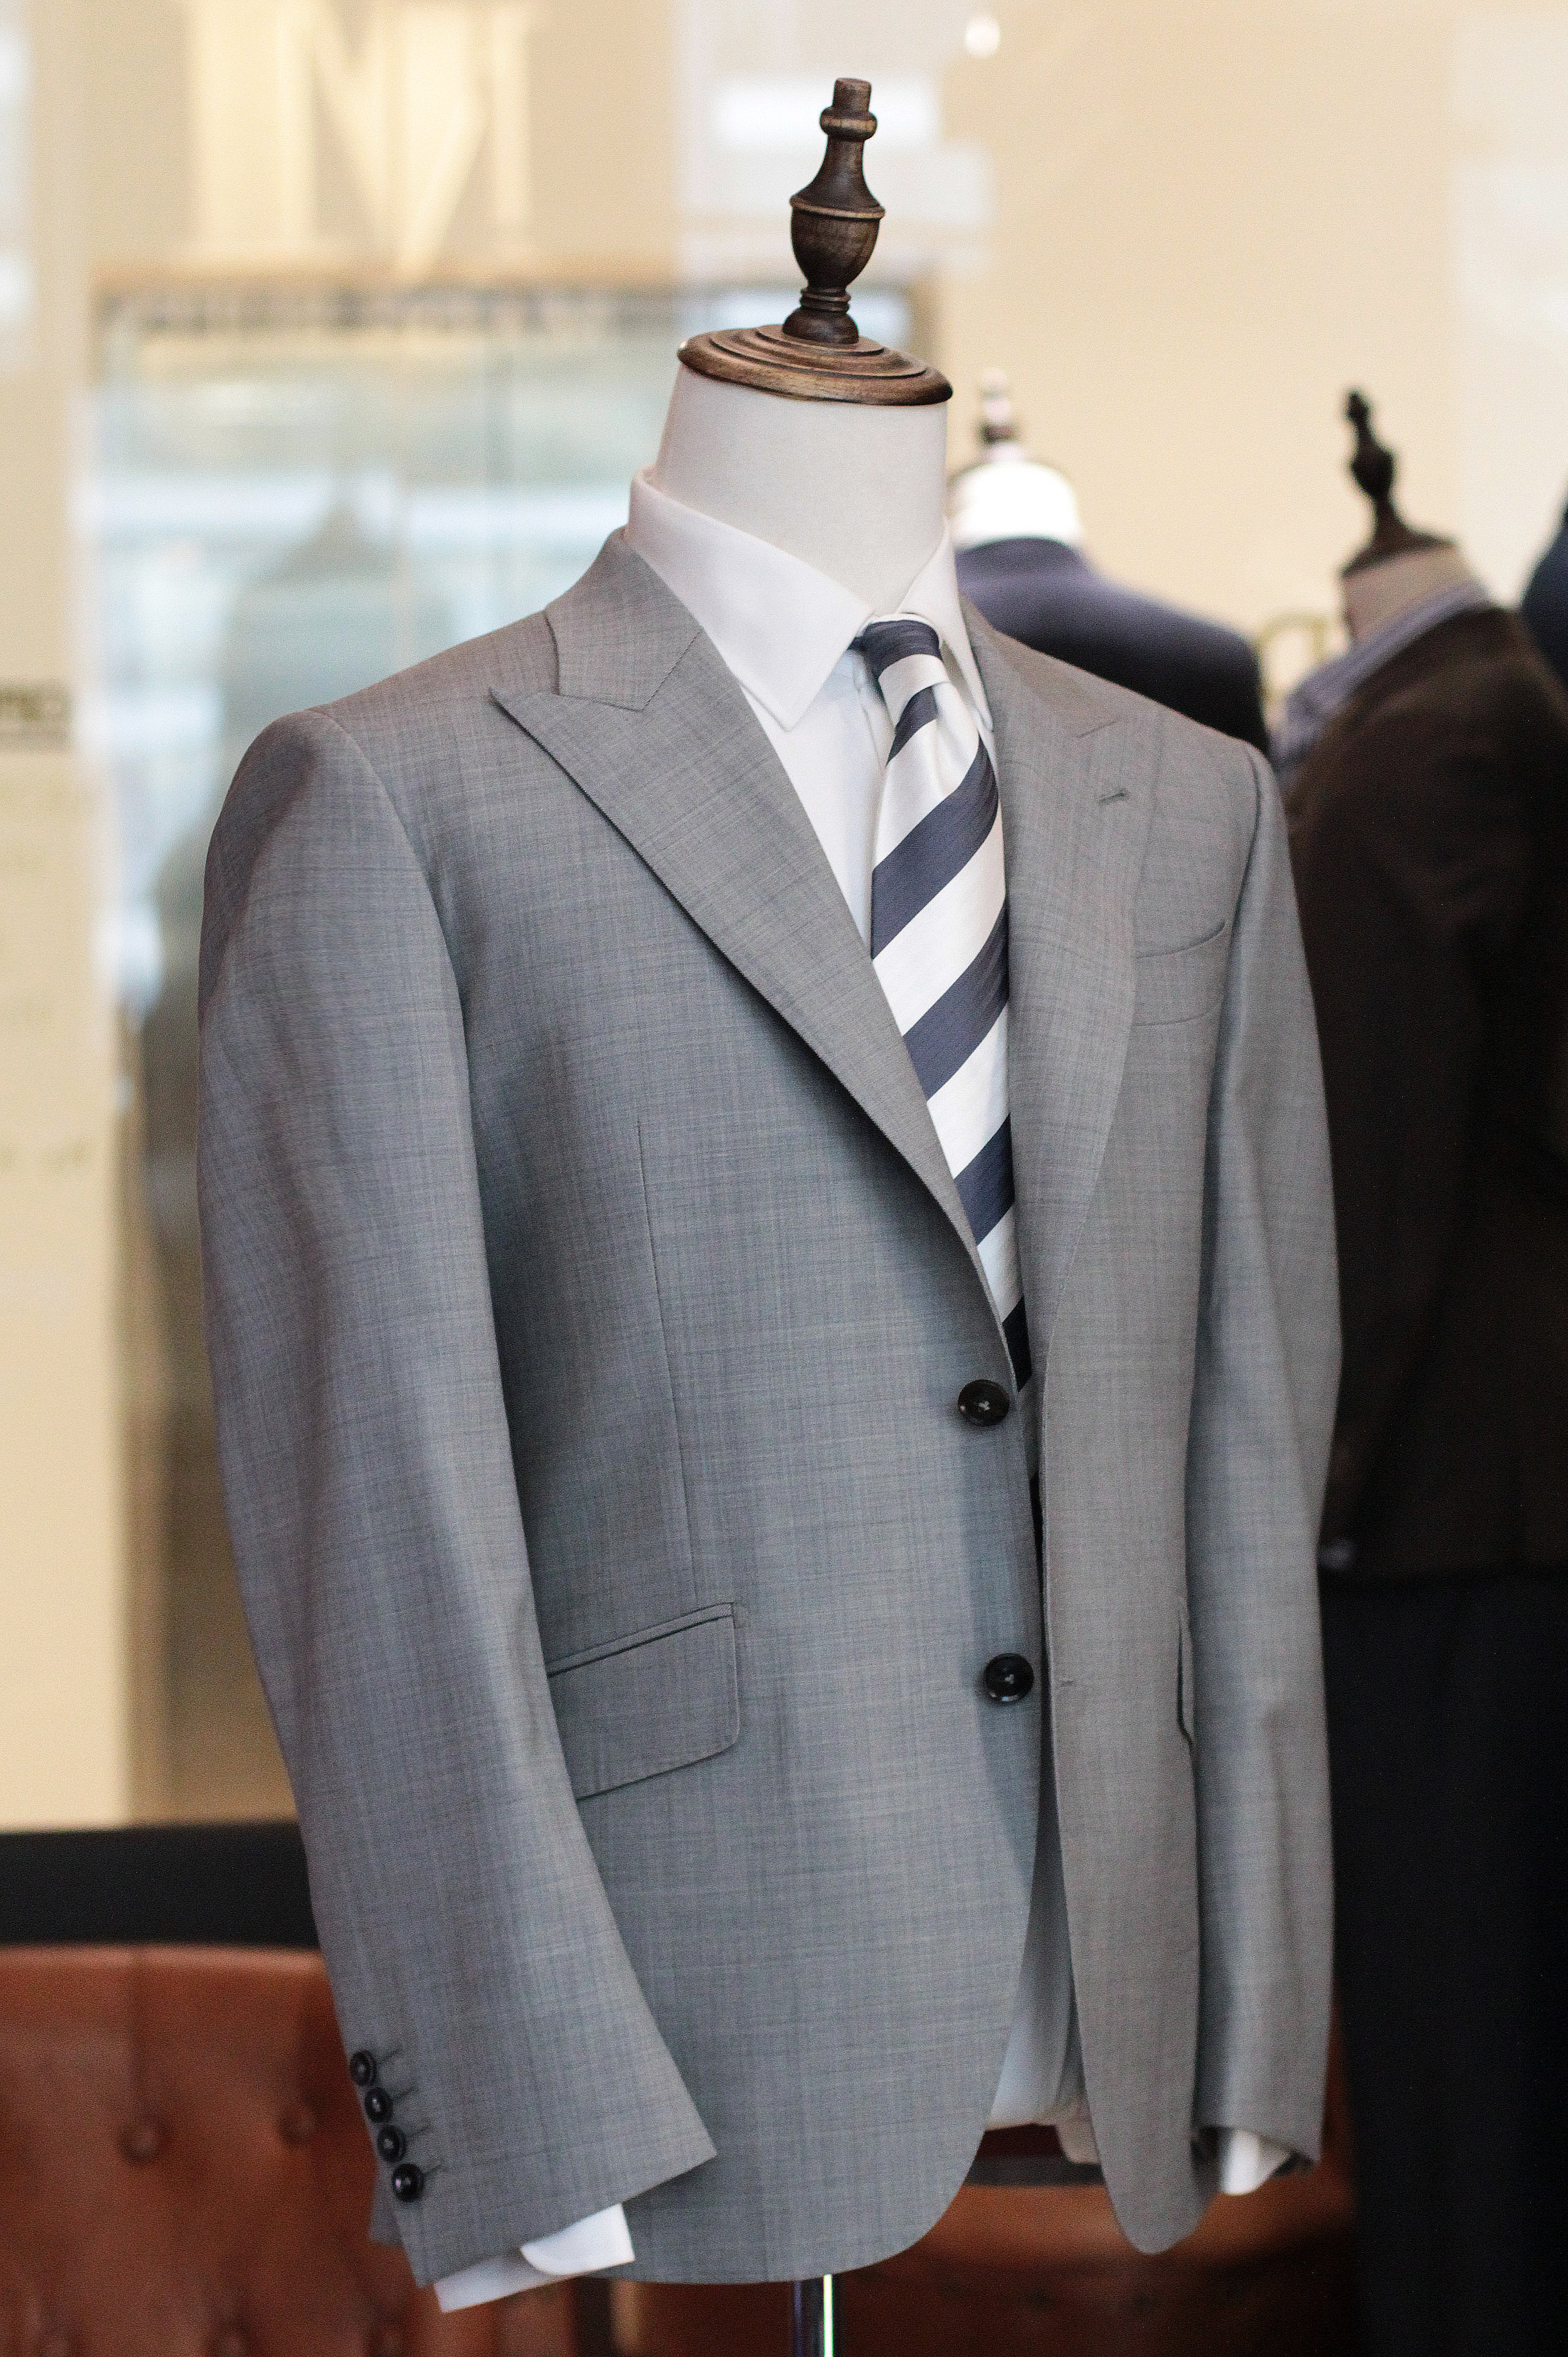 The Collateral   Made Suits Tailor singapore suits bespoke made to measure side view.JPG